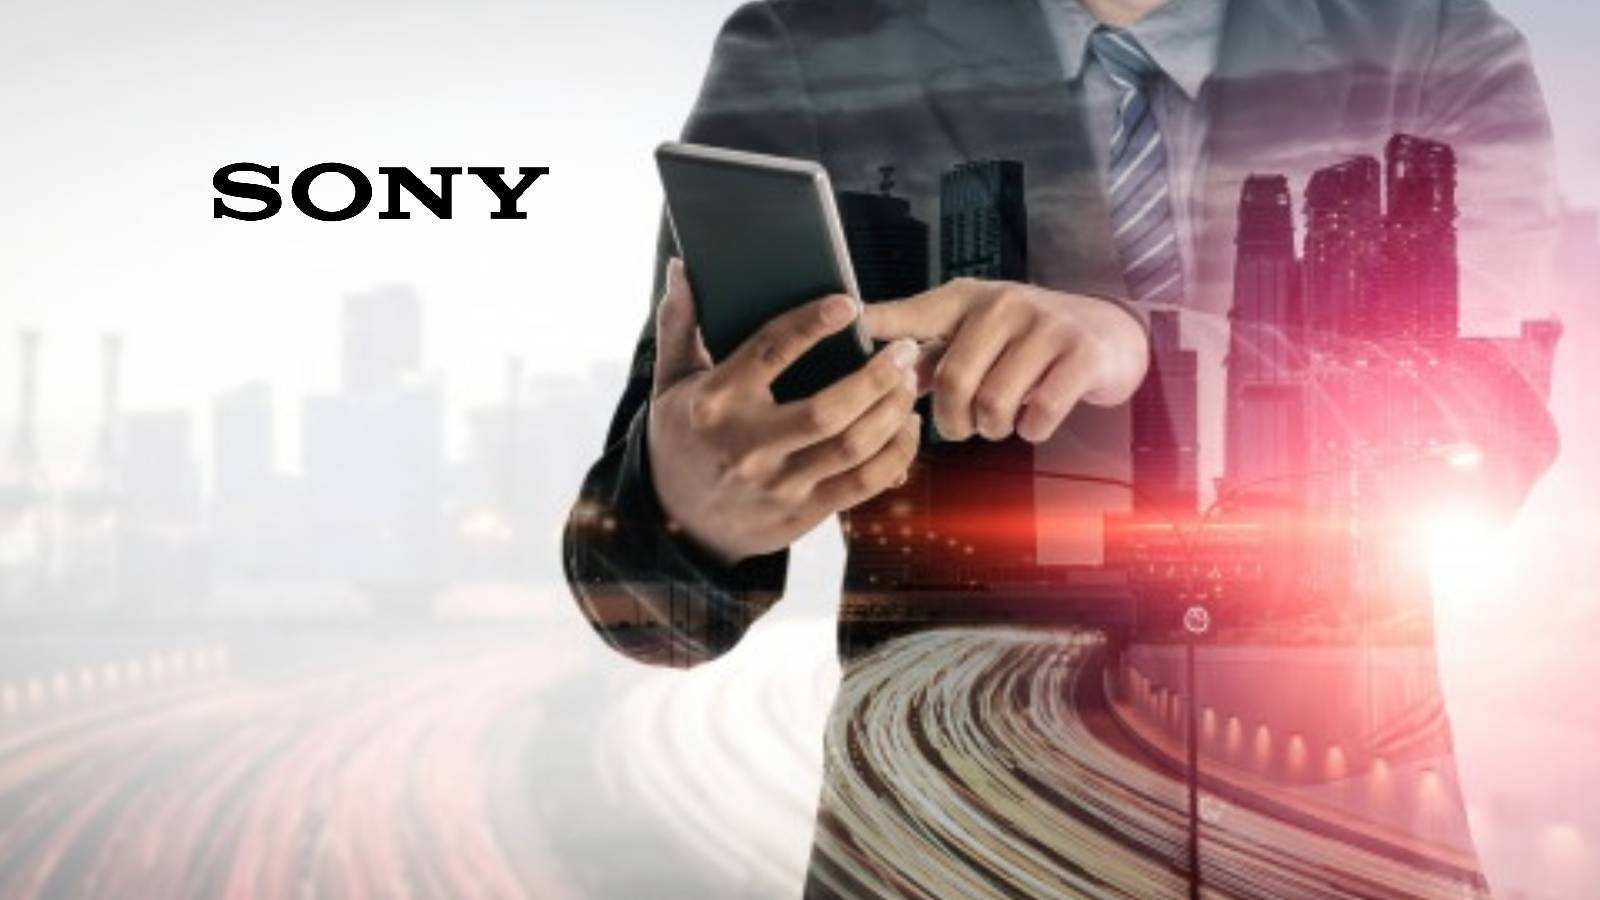 Sony Introduces Optimal Flexibility In Remote Communication